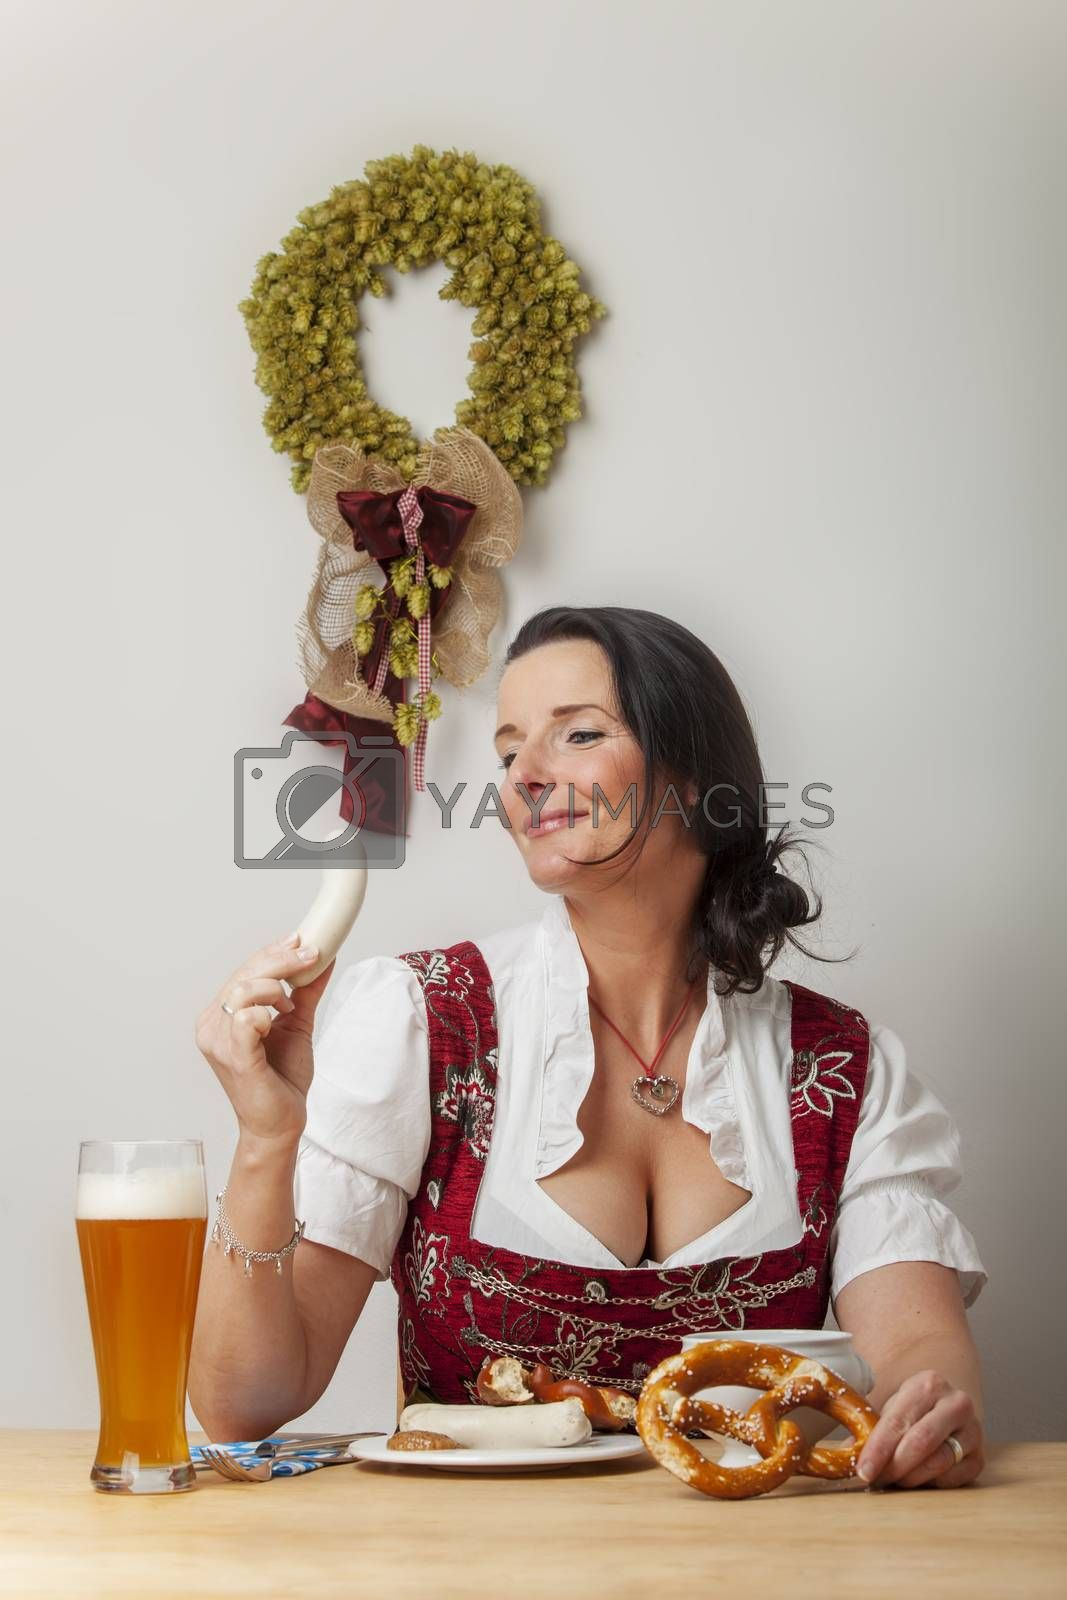 bavarian woman in a dirndl eating